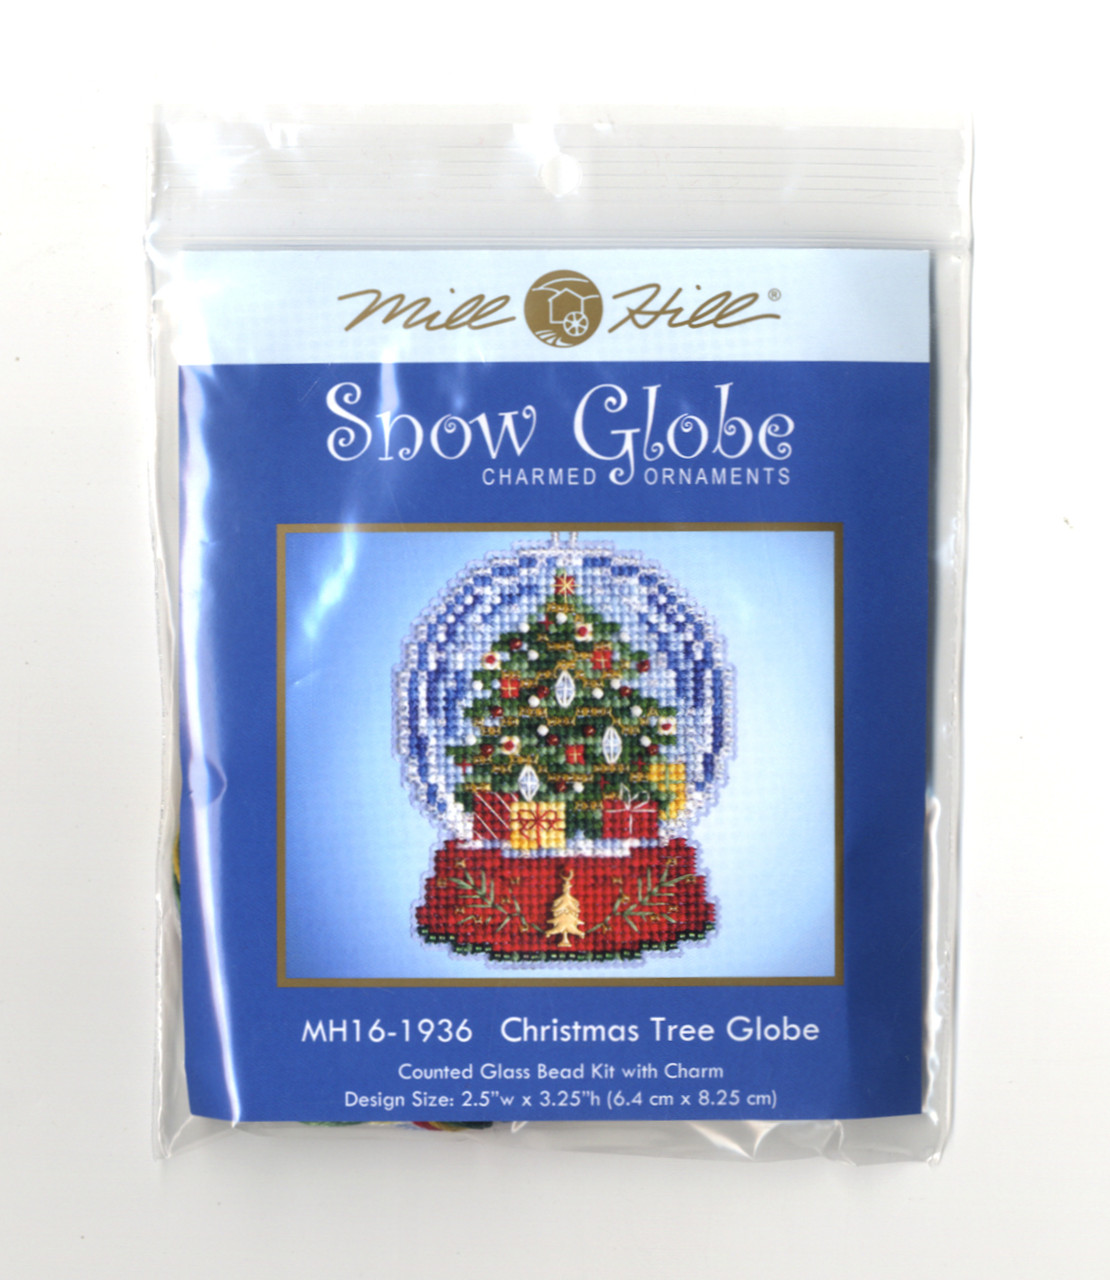 Mill Hill 2019 Snow Globe Charmed Ornament - Christmas Tree Globe